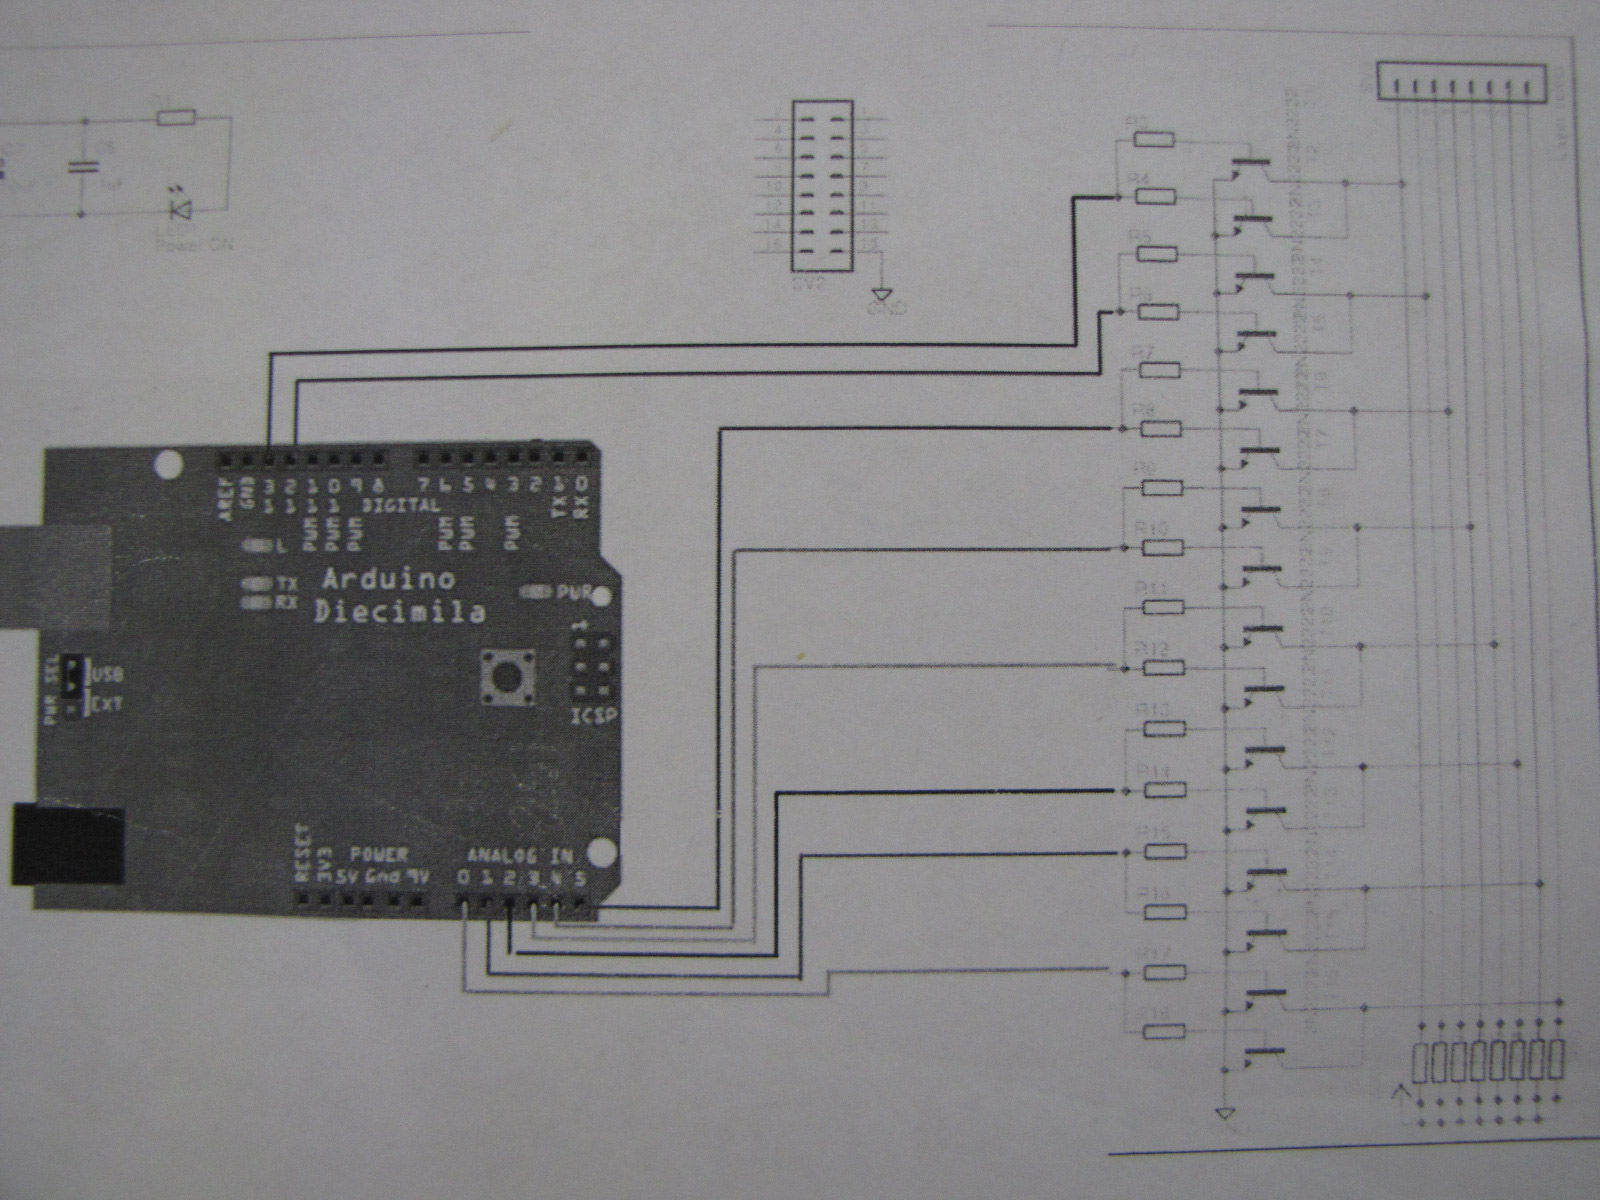 How To Build 8x8x8 Led Cube Servo Pin Diagram Free Download Wiring Diagrams Pictures Transistor Schematic Larger Image